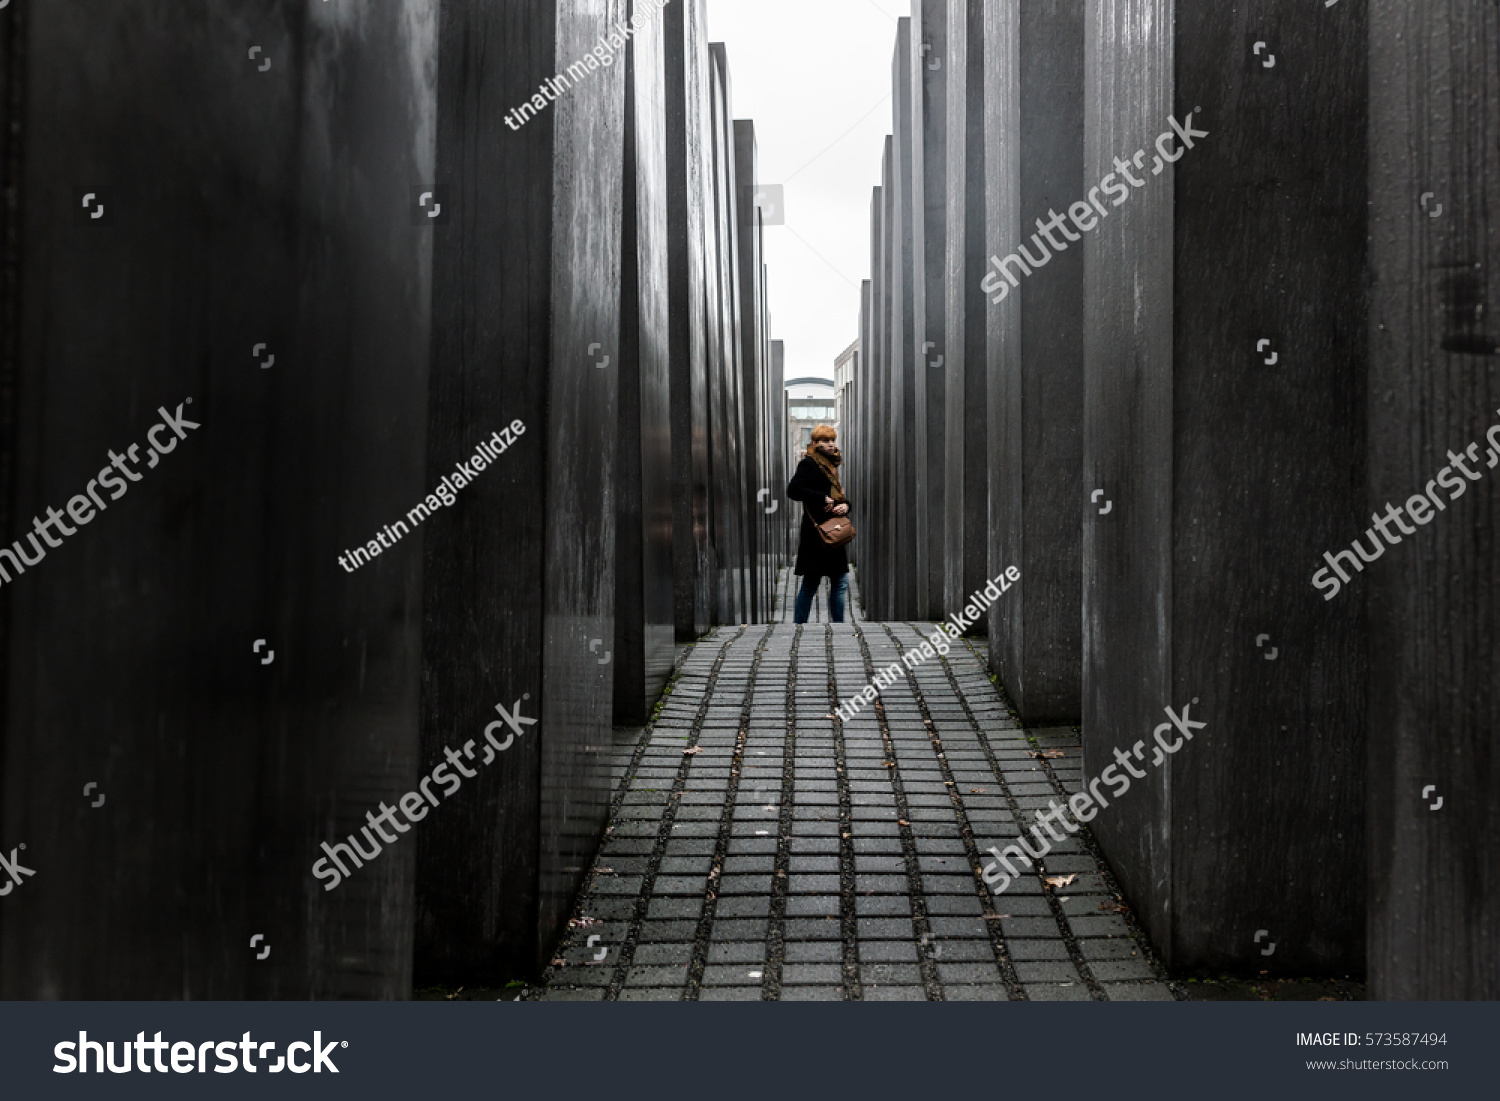 BERLIN - DECEMBER 01: Jewish Memorial near Potsdamer Platz, Berlin, Germany ON DECEMBER 01:12.2016 #573587494